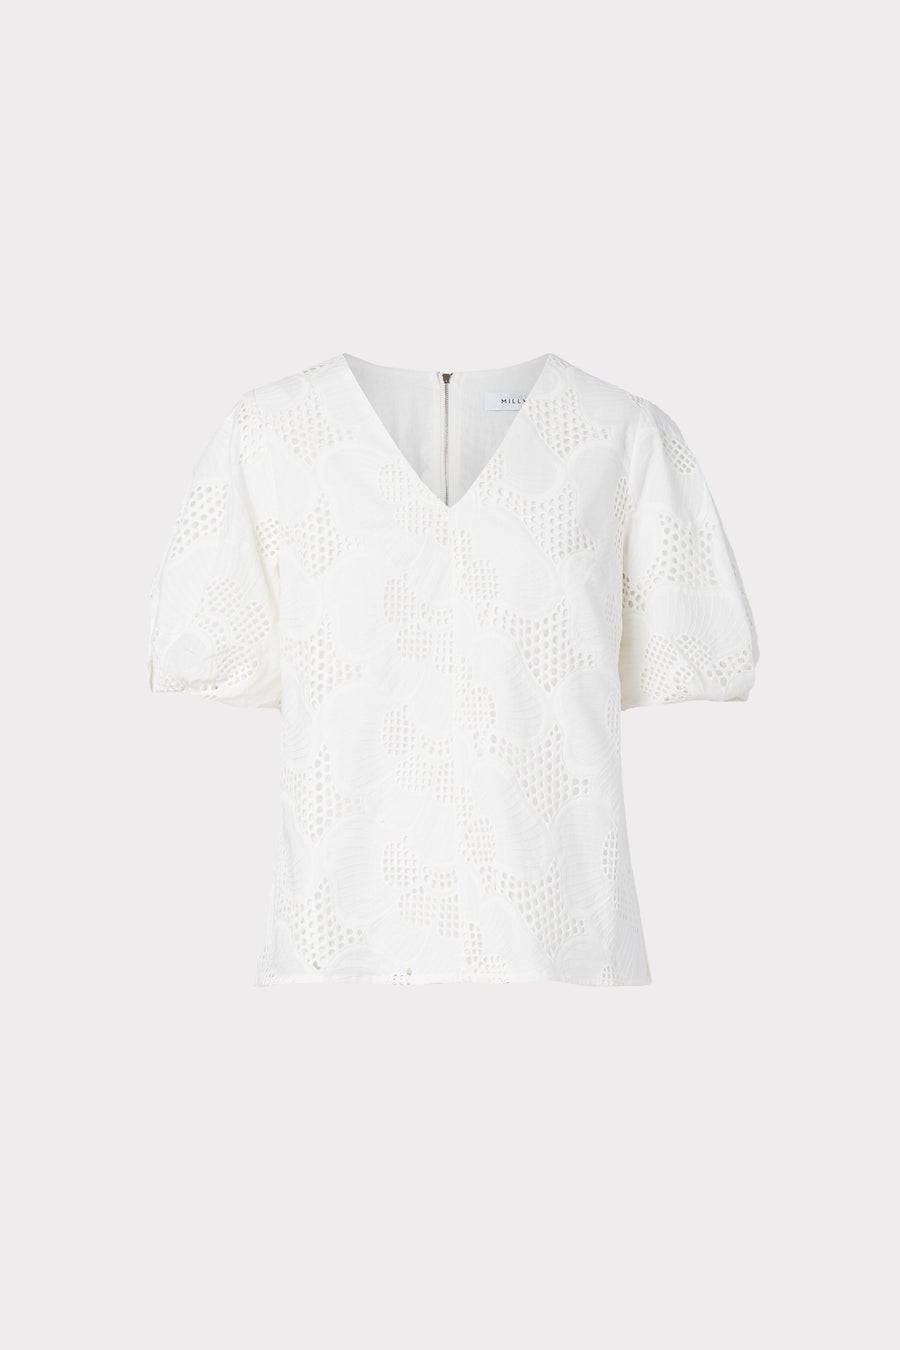 Maci Pieres Eyelet Puff Sleeve Top